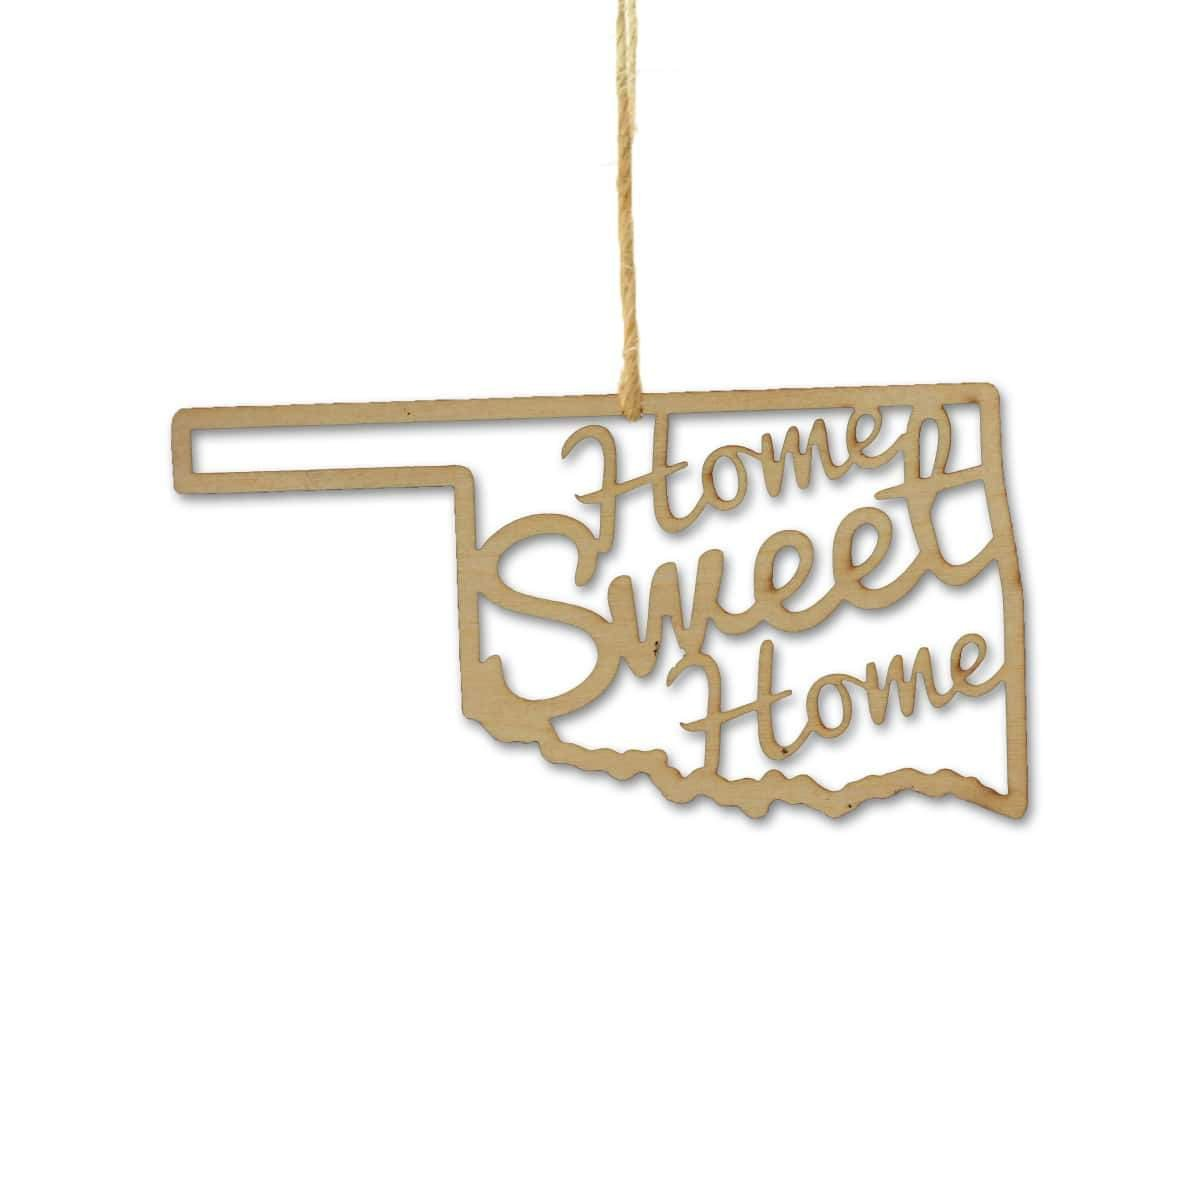 Torched Products Ornaments Oklahoma Home Sweet Home Ornaments (781220937845)